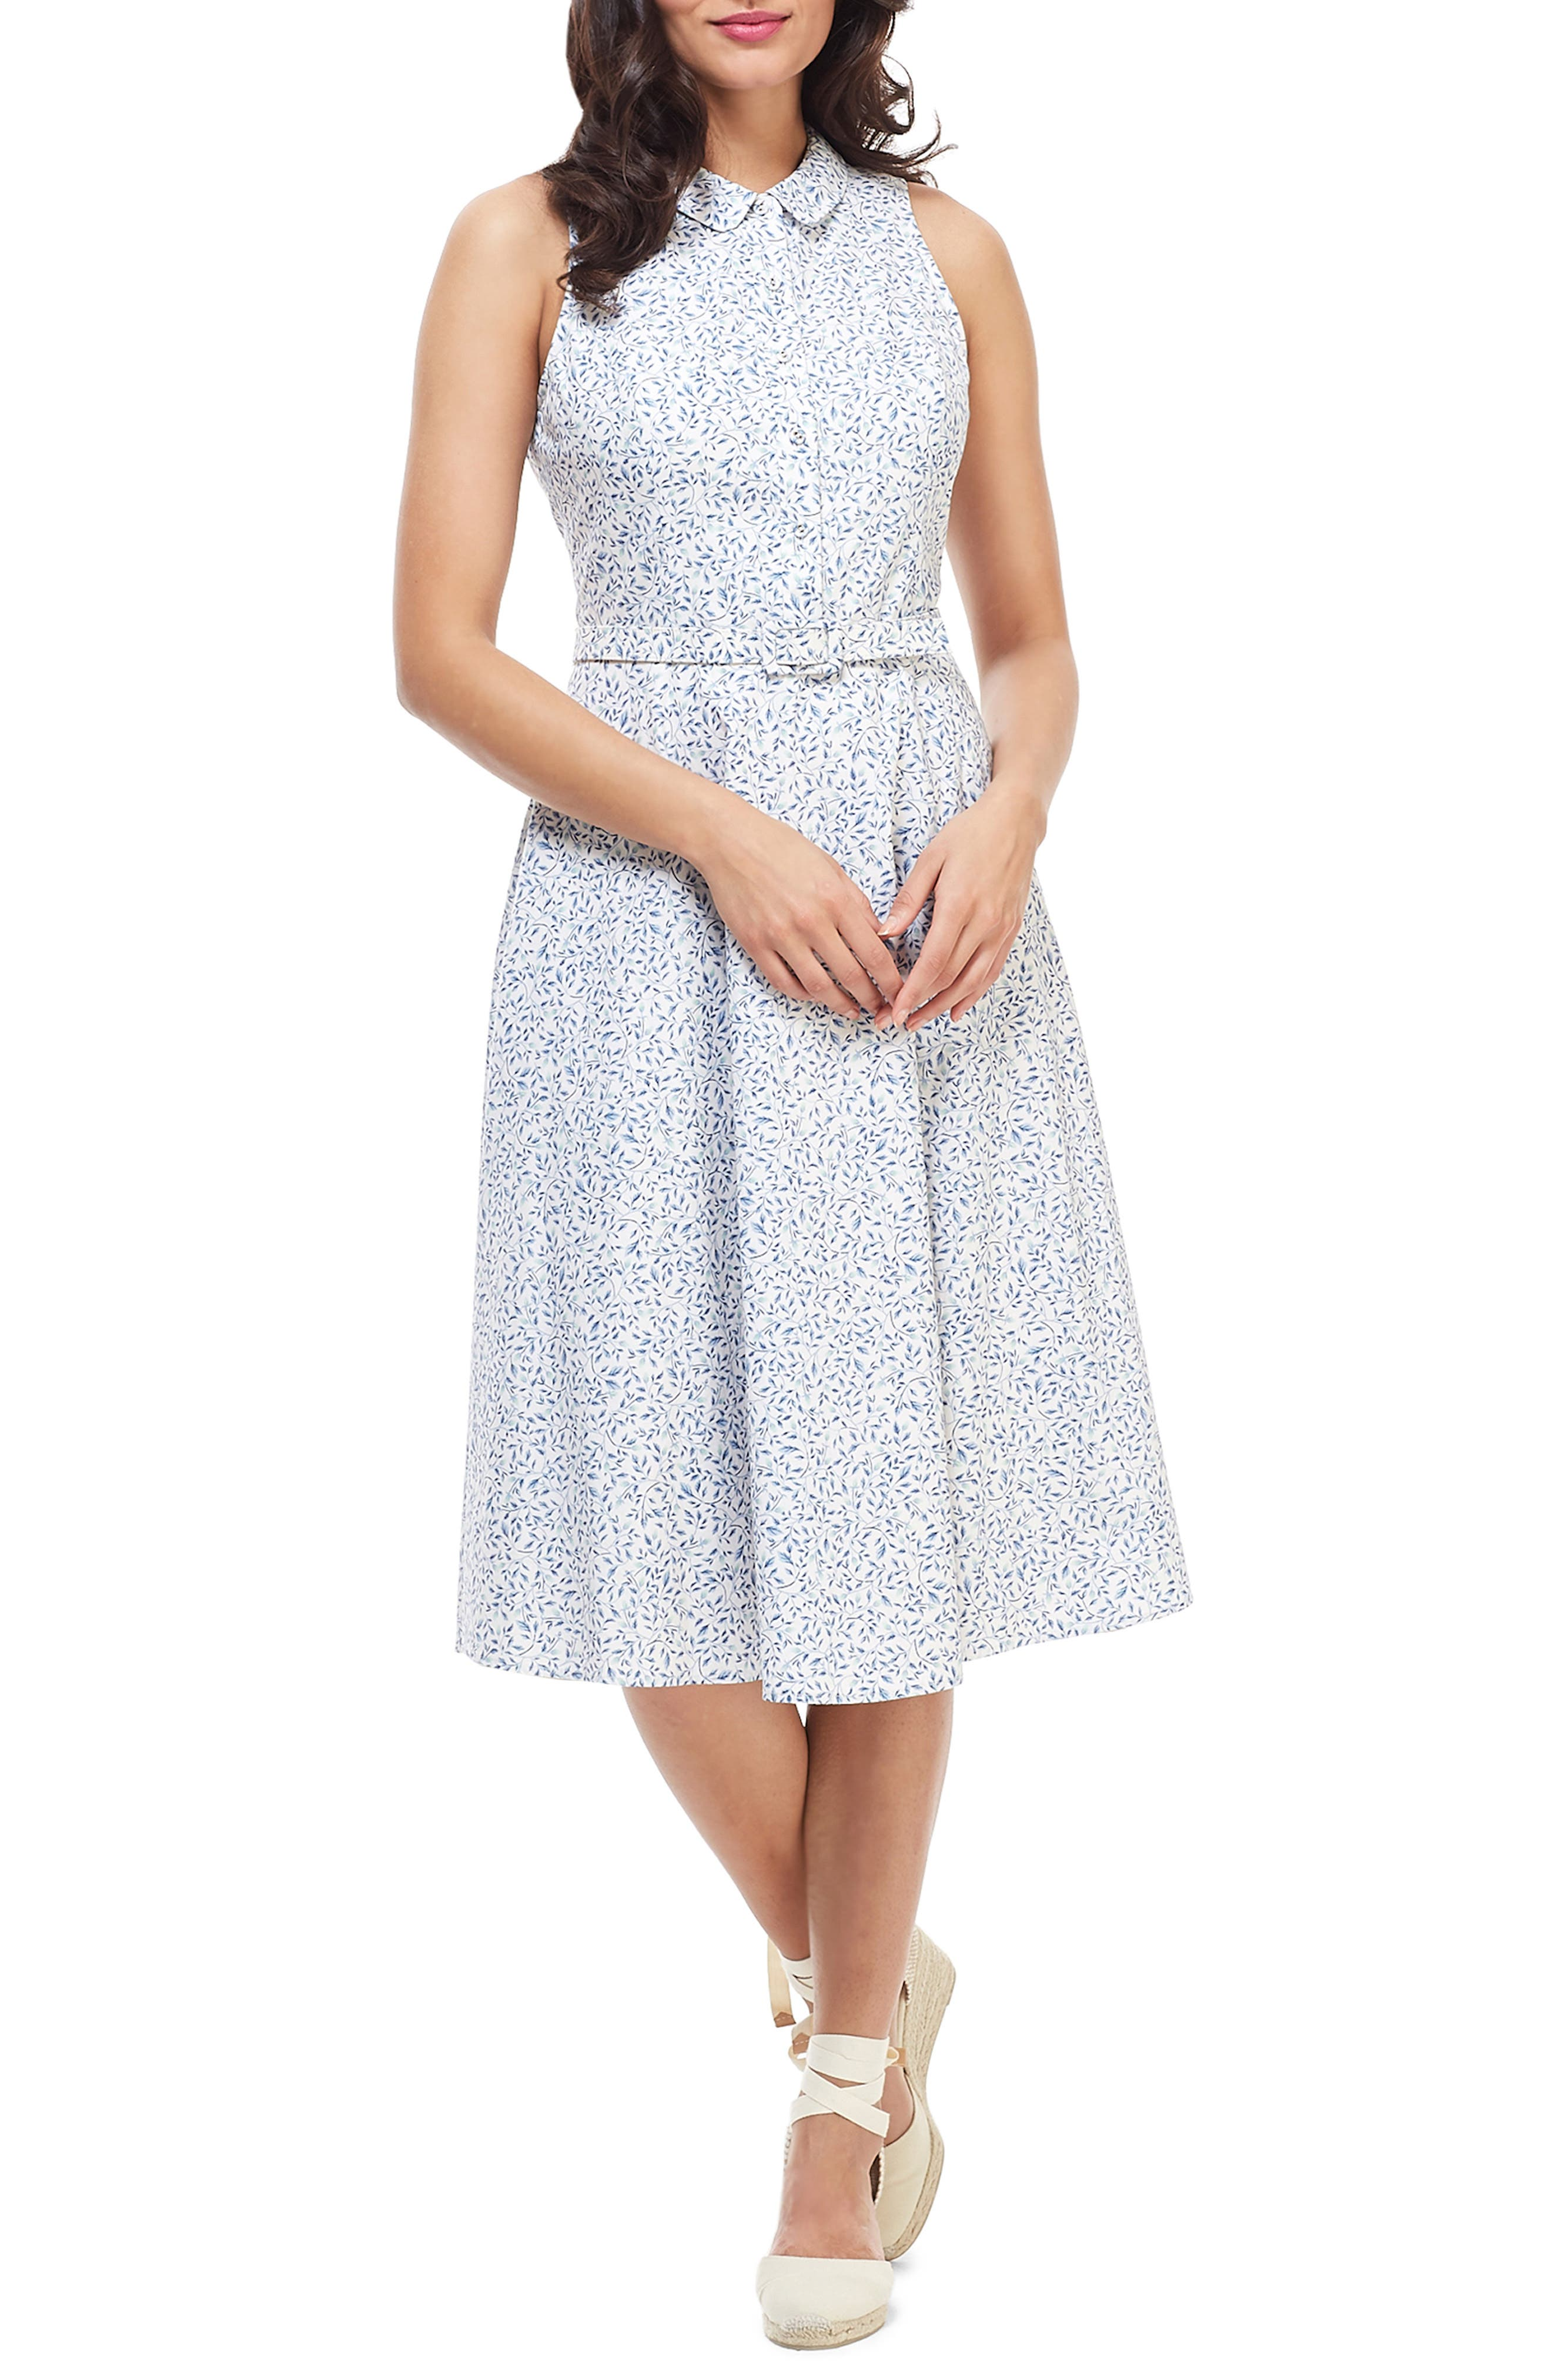 Petite Gal Meets Glam Collection Rose Floral Button Up Fit & Flare Cotton Dress, Blue